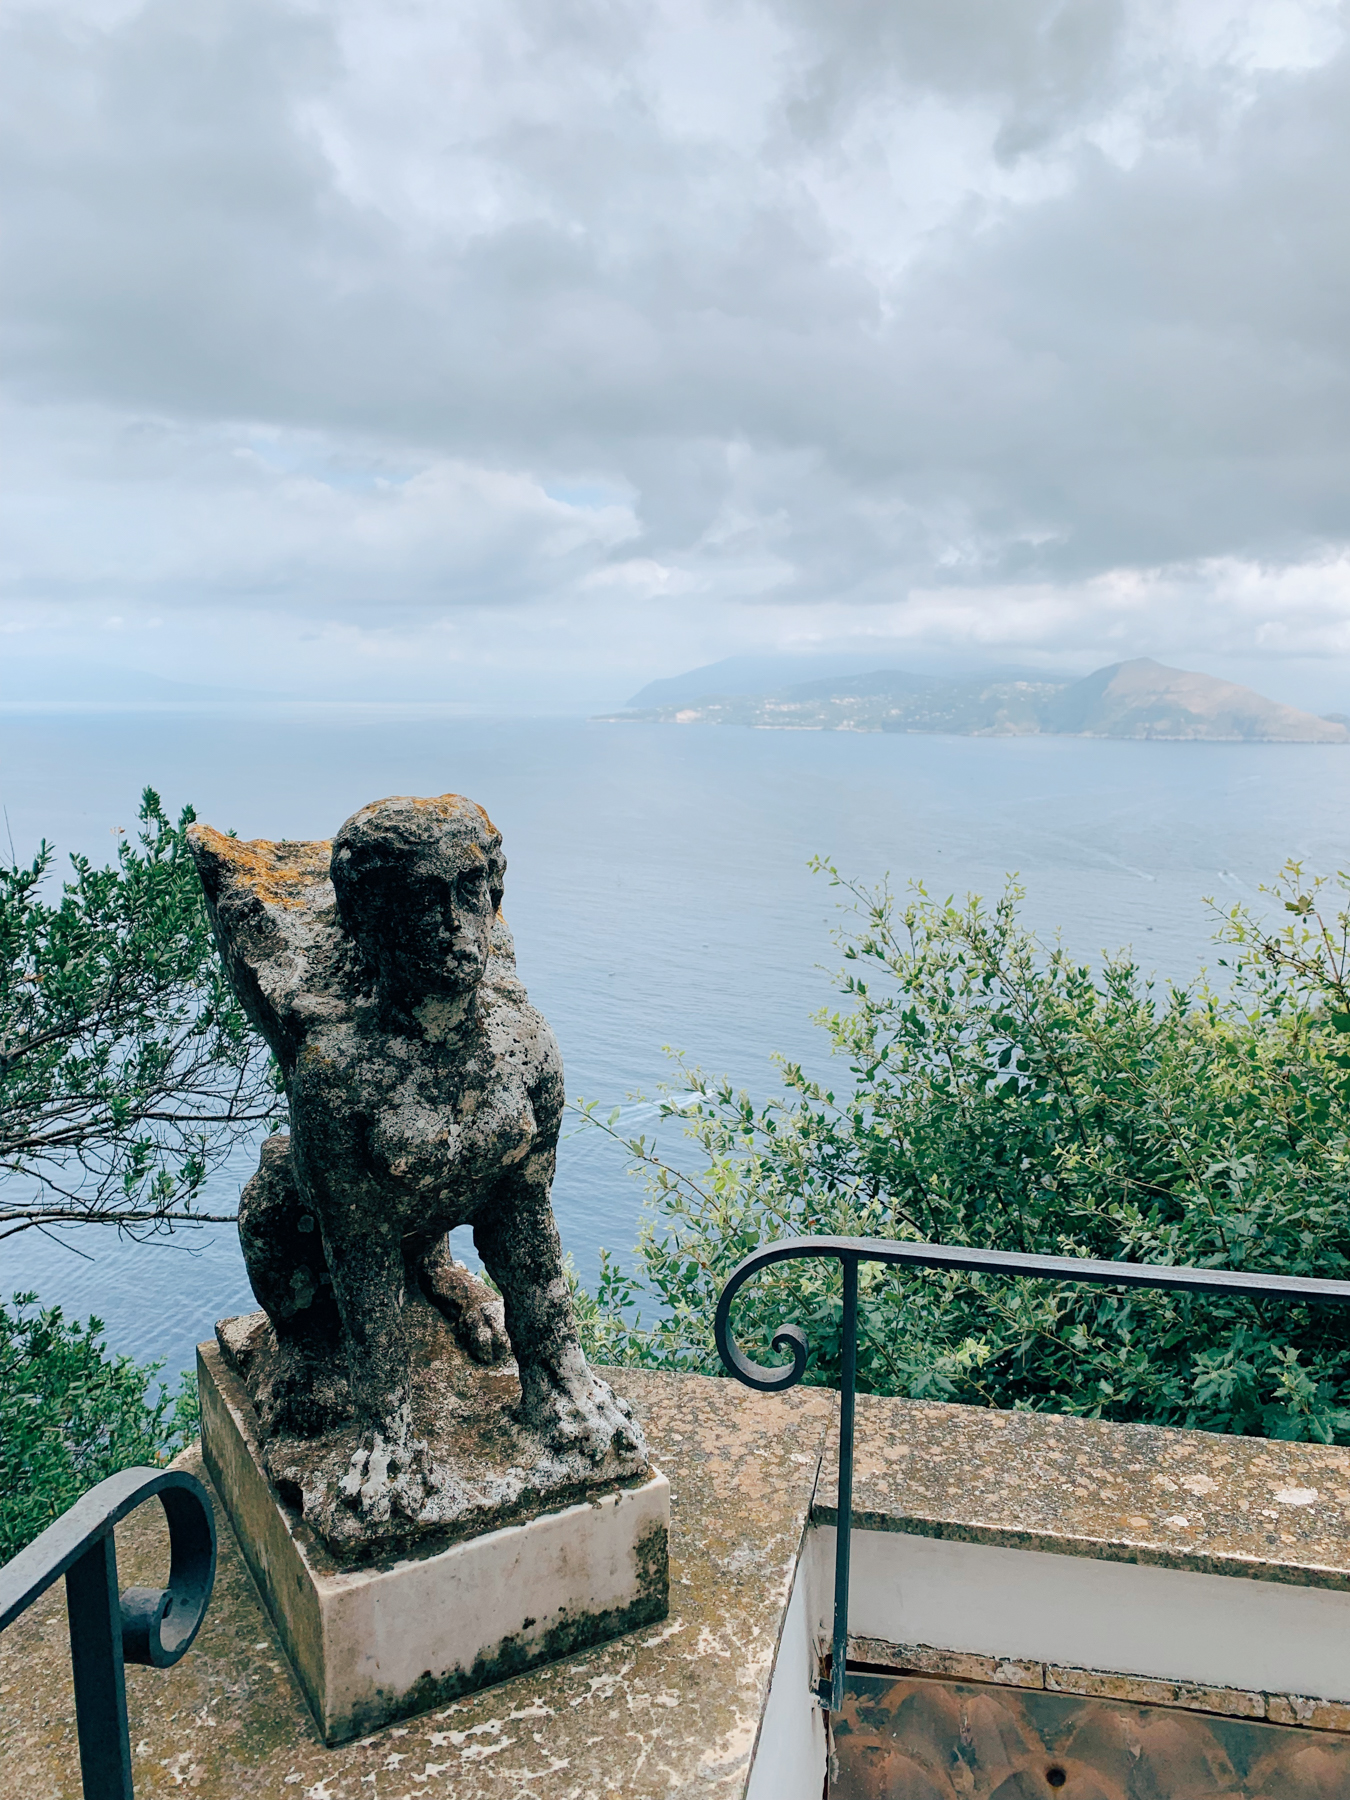 Views of the water from Villa San Michele.